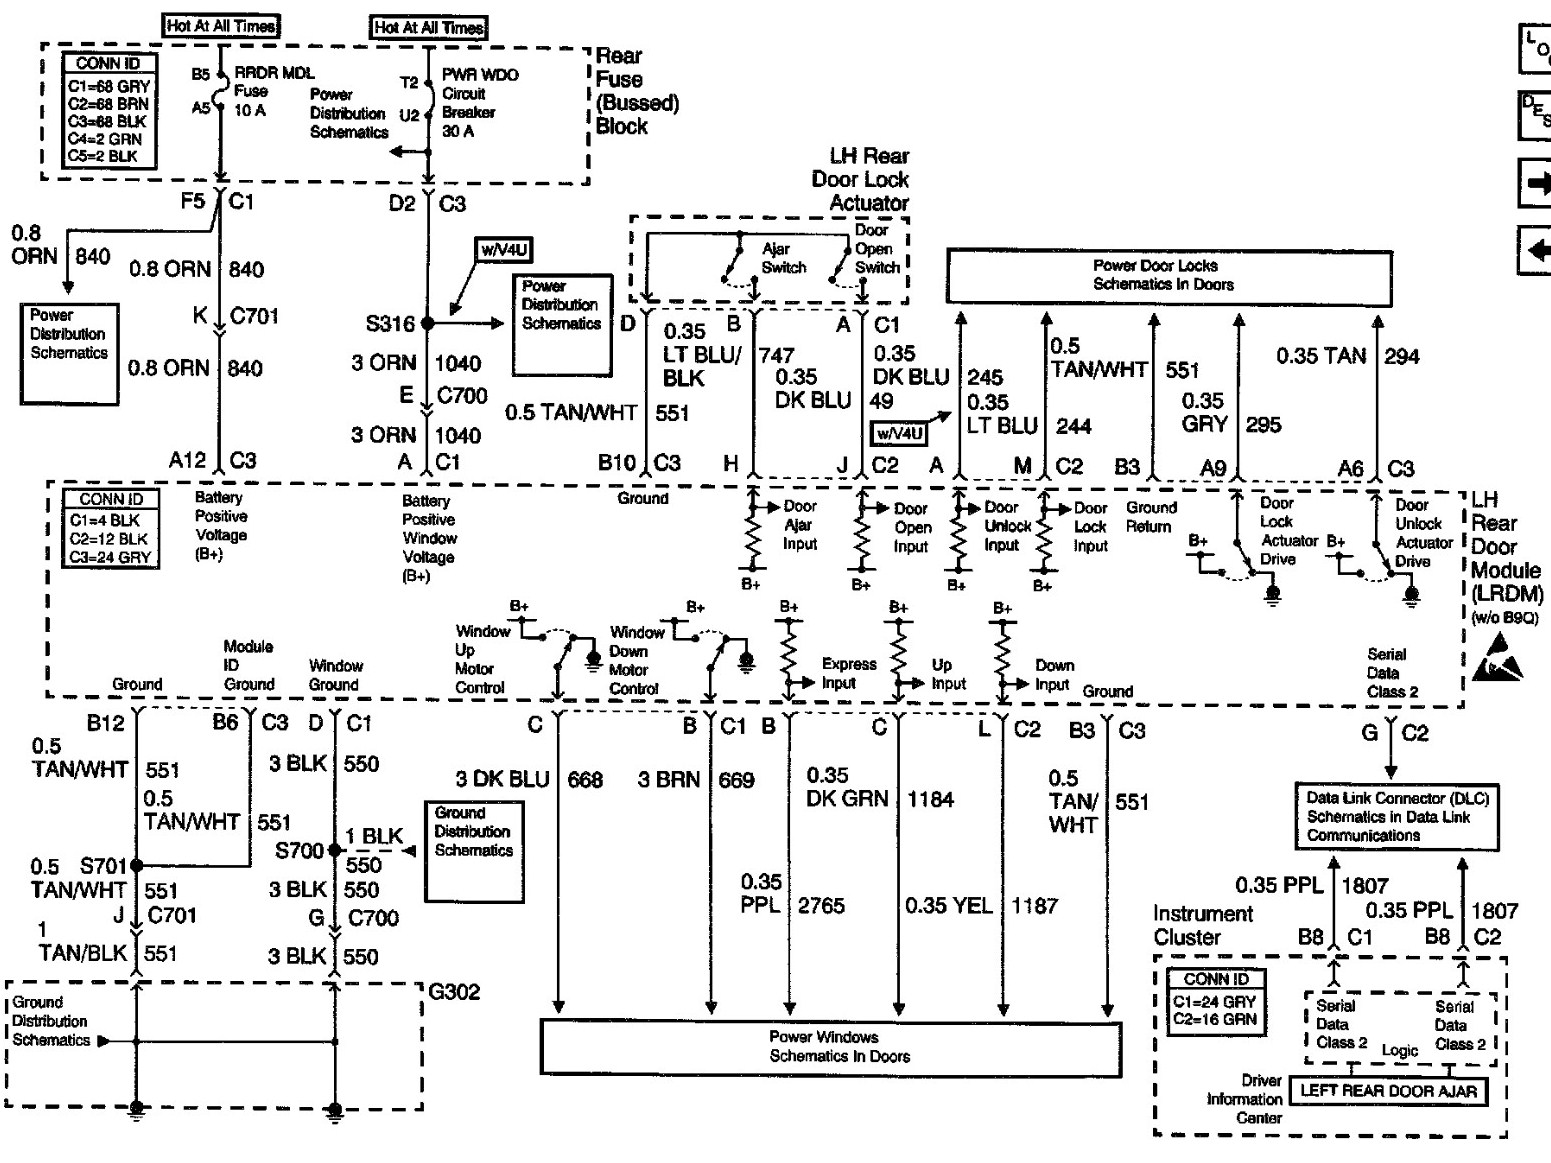 C066 Cadillac Models Fuse Box Diagram | Wiring LibraryWiring Library